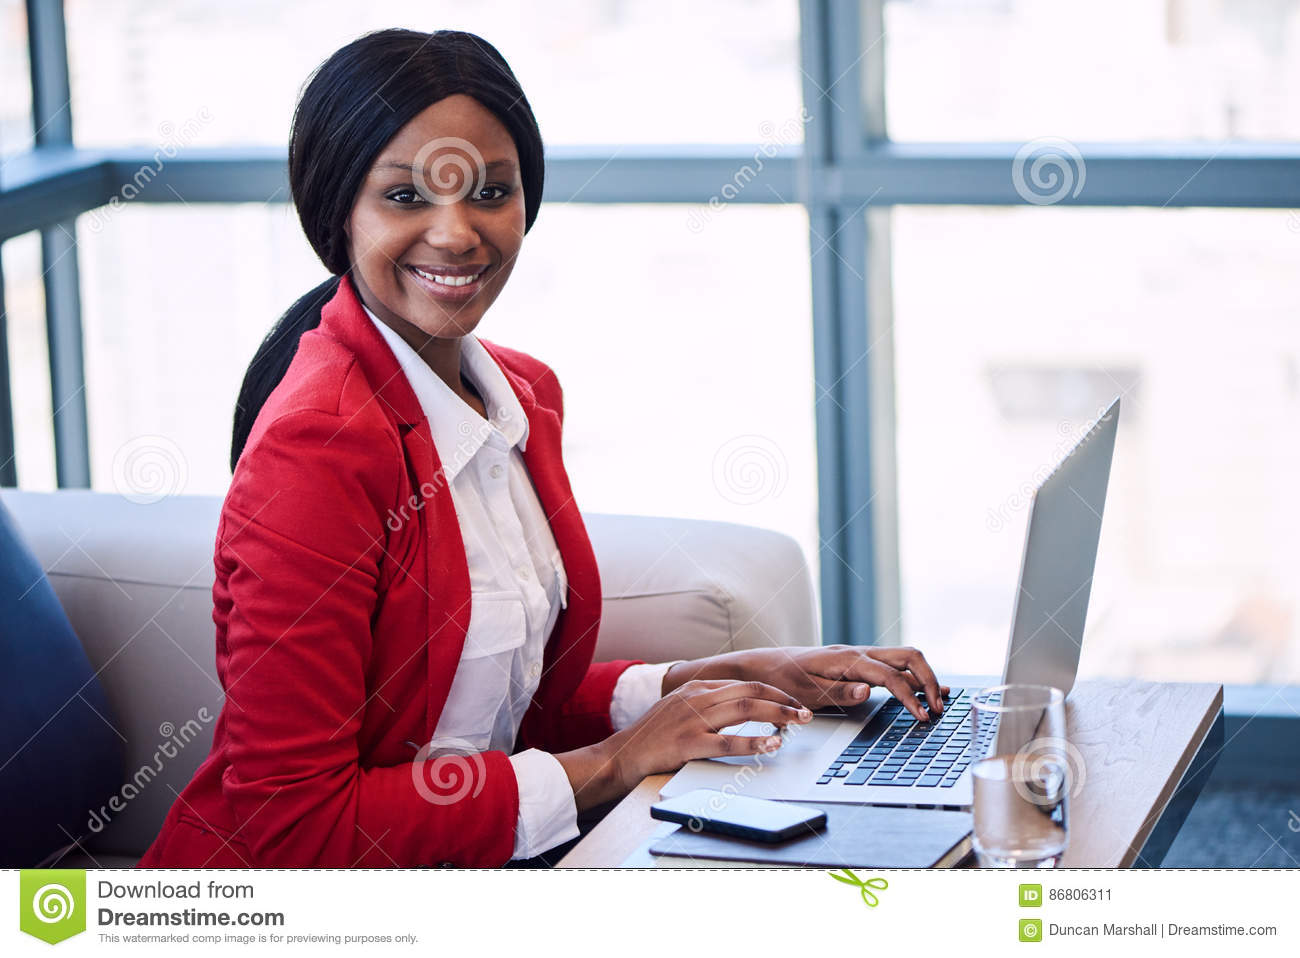 Download Black Businesswoman Smiling At The Camera While Seated On Sofa Stock Image - Image of dedicated, committed: 86806311